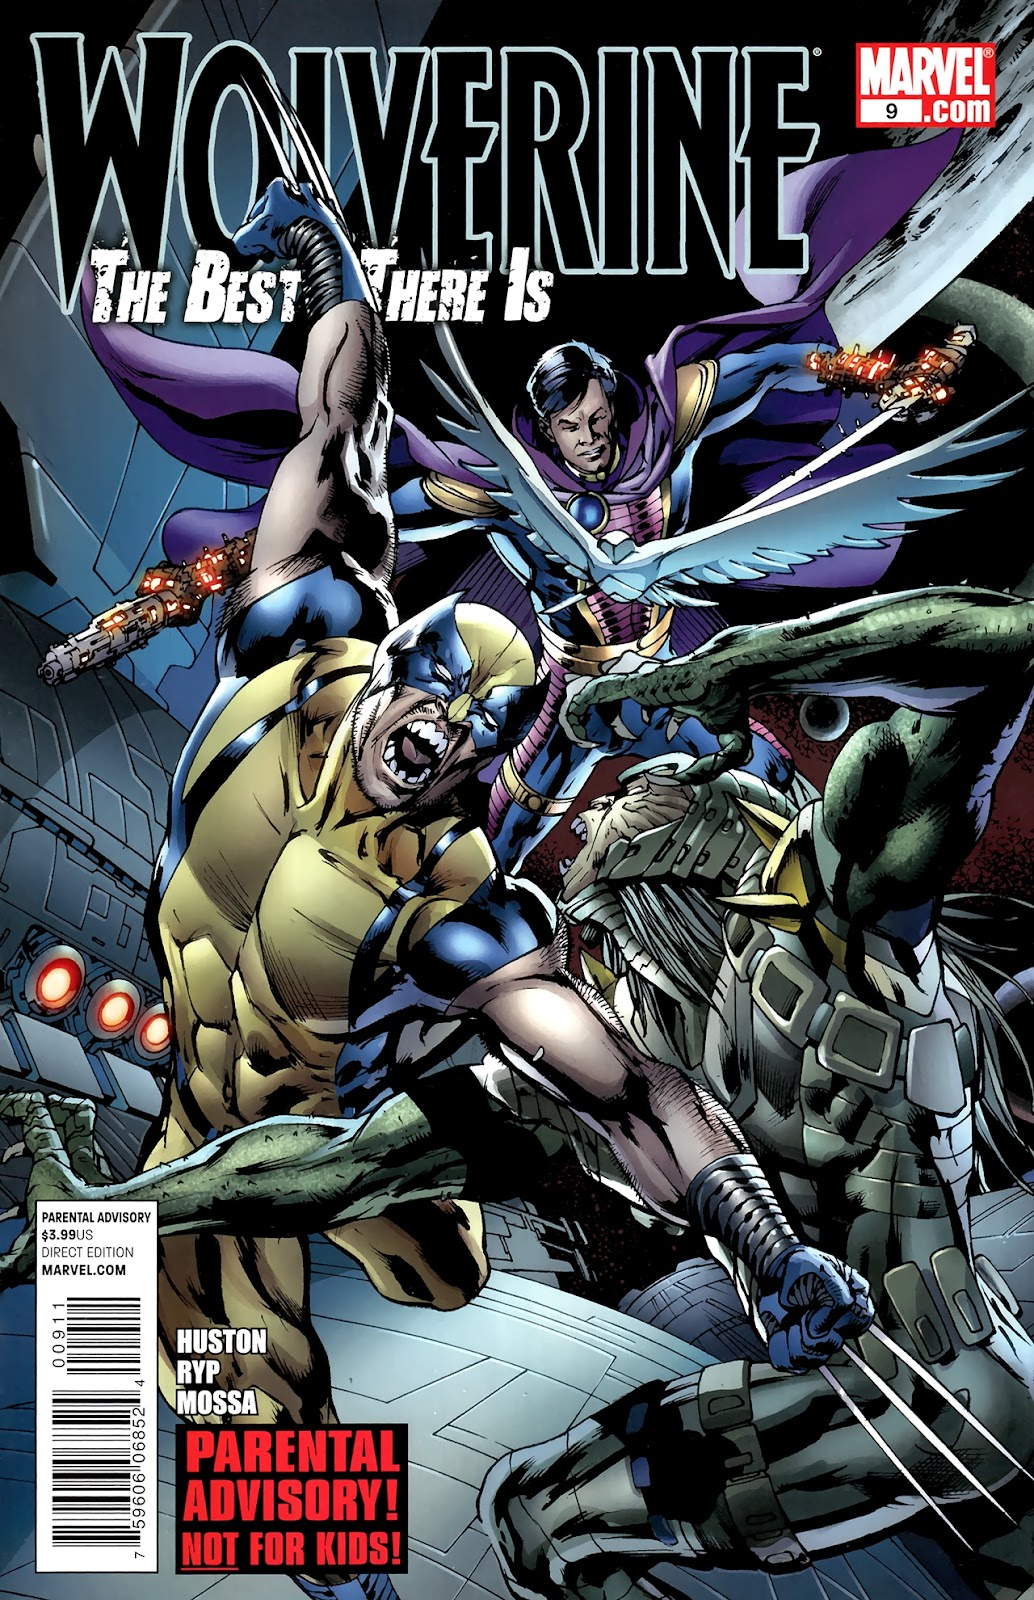 Wolverine: The Best There Is 9 Page 1